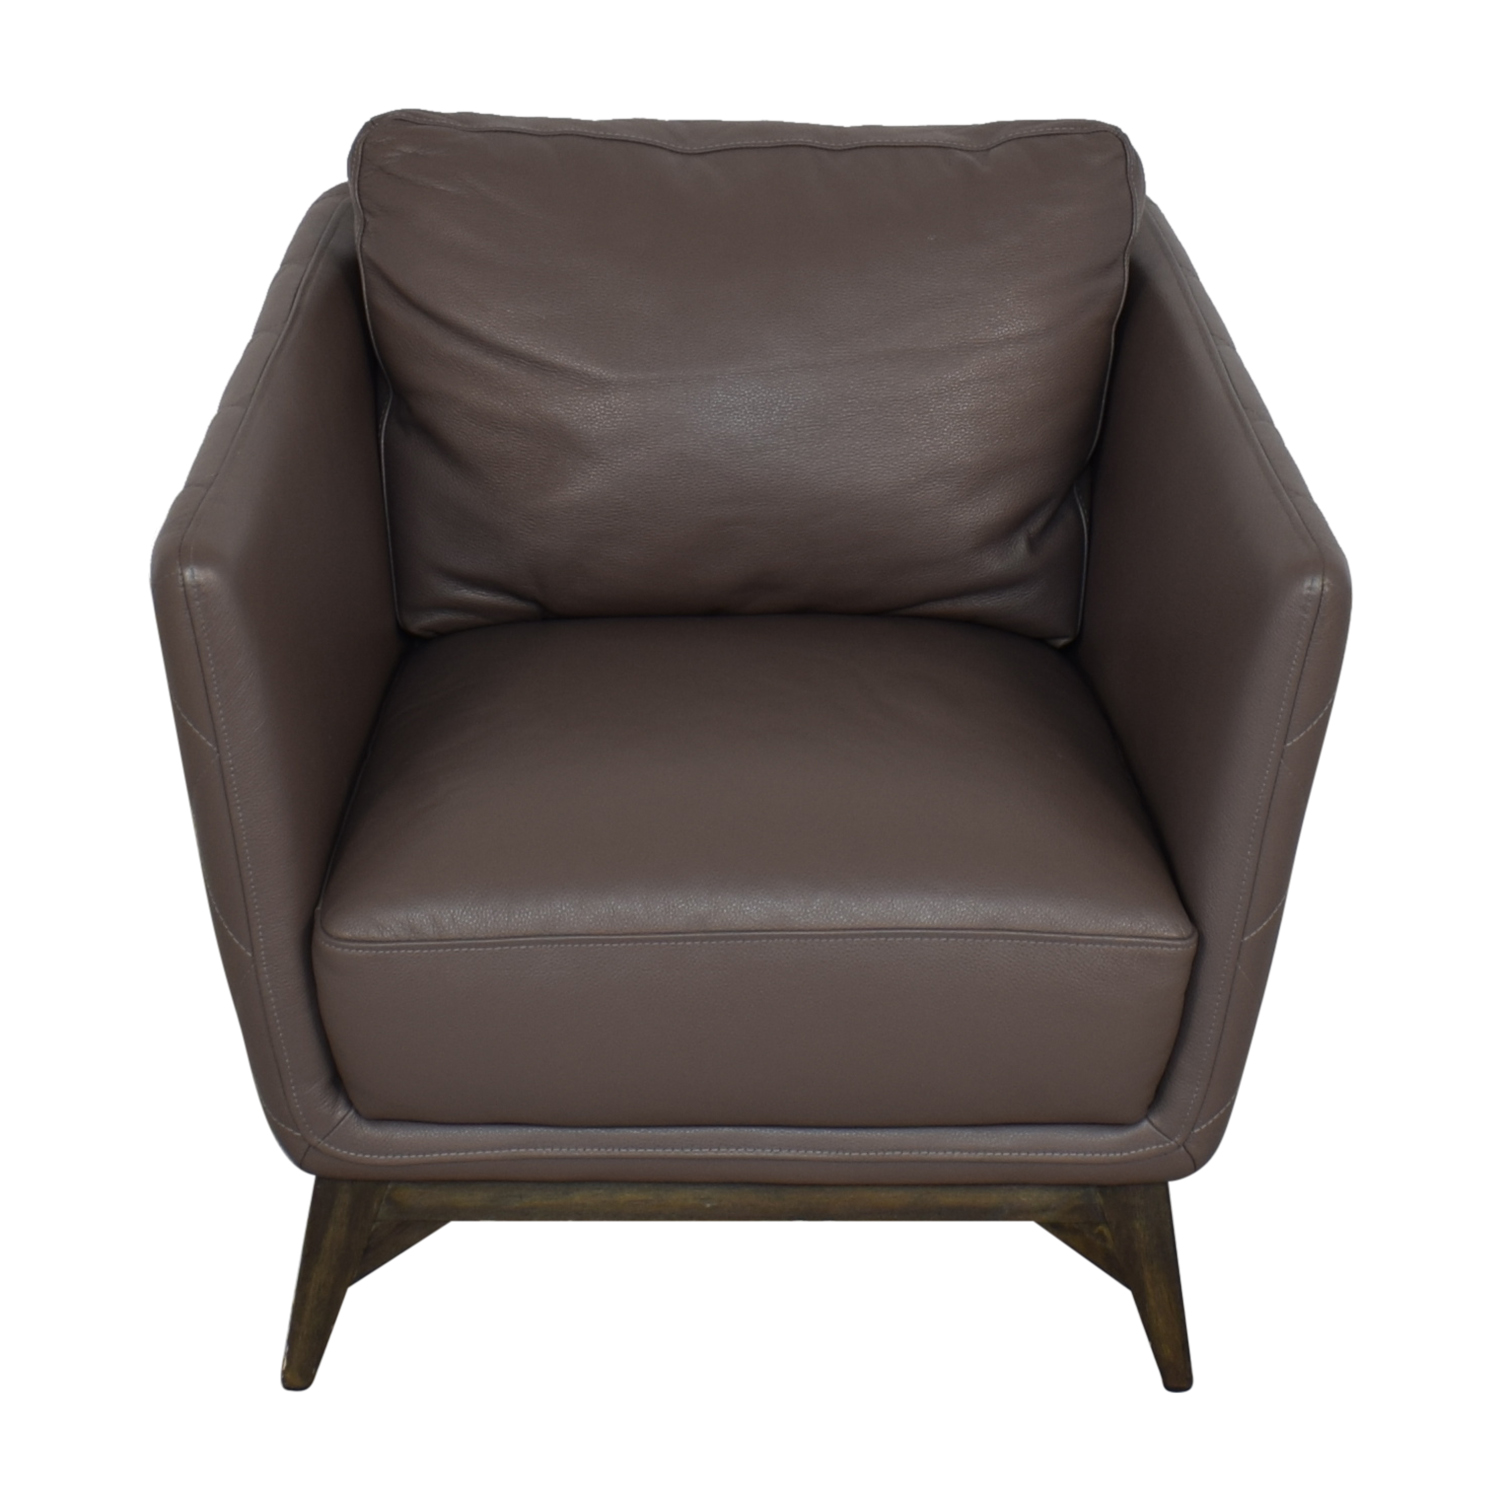 Macy's Leather Chair sale